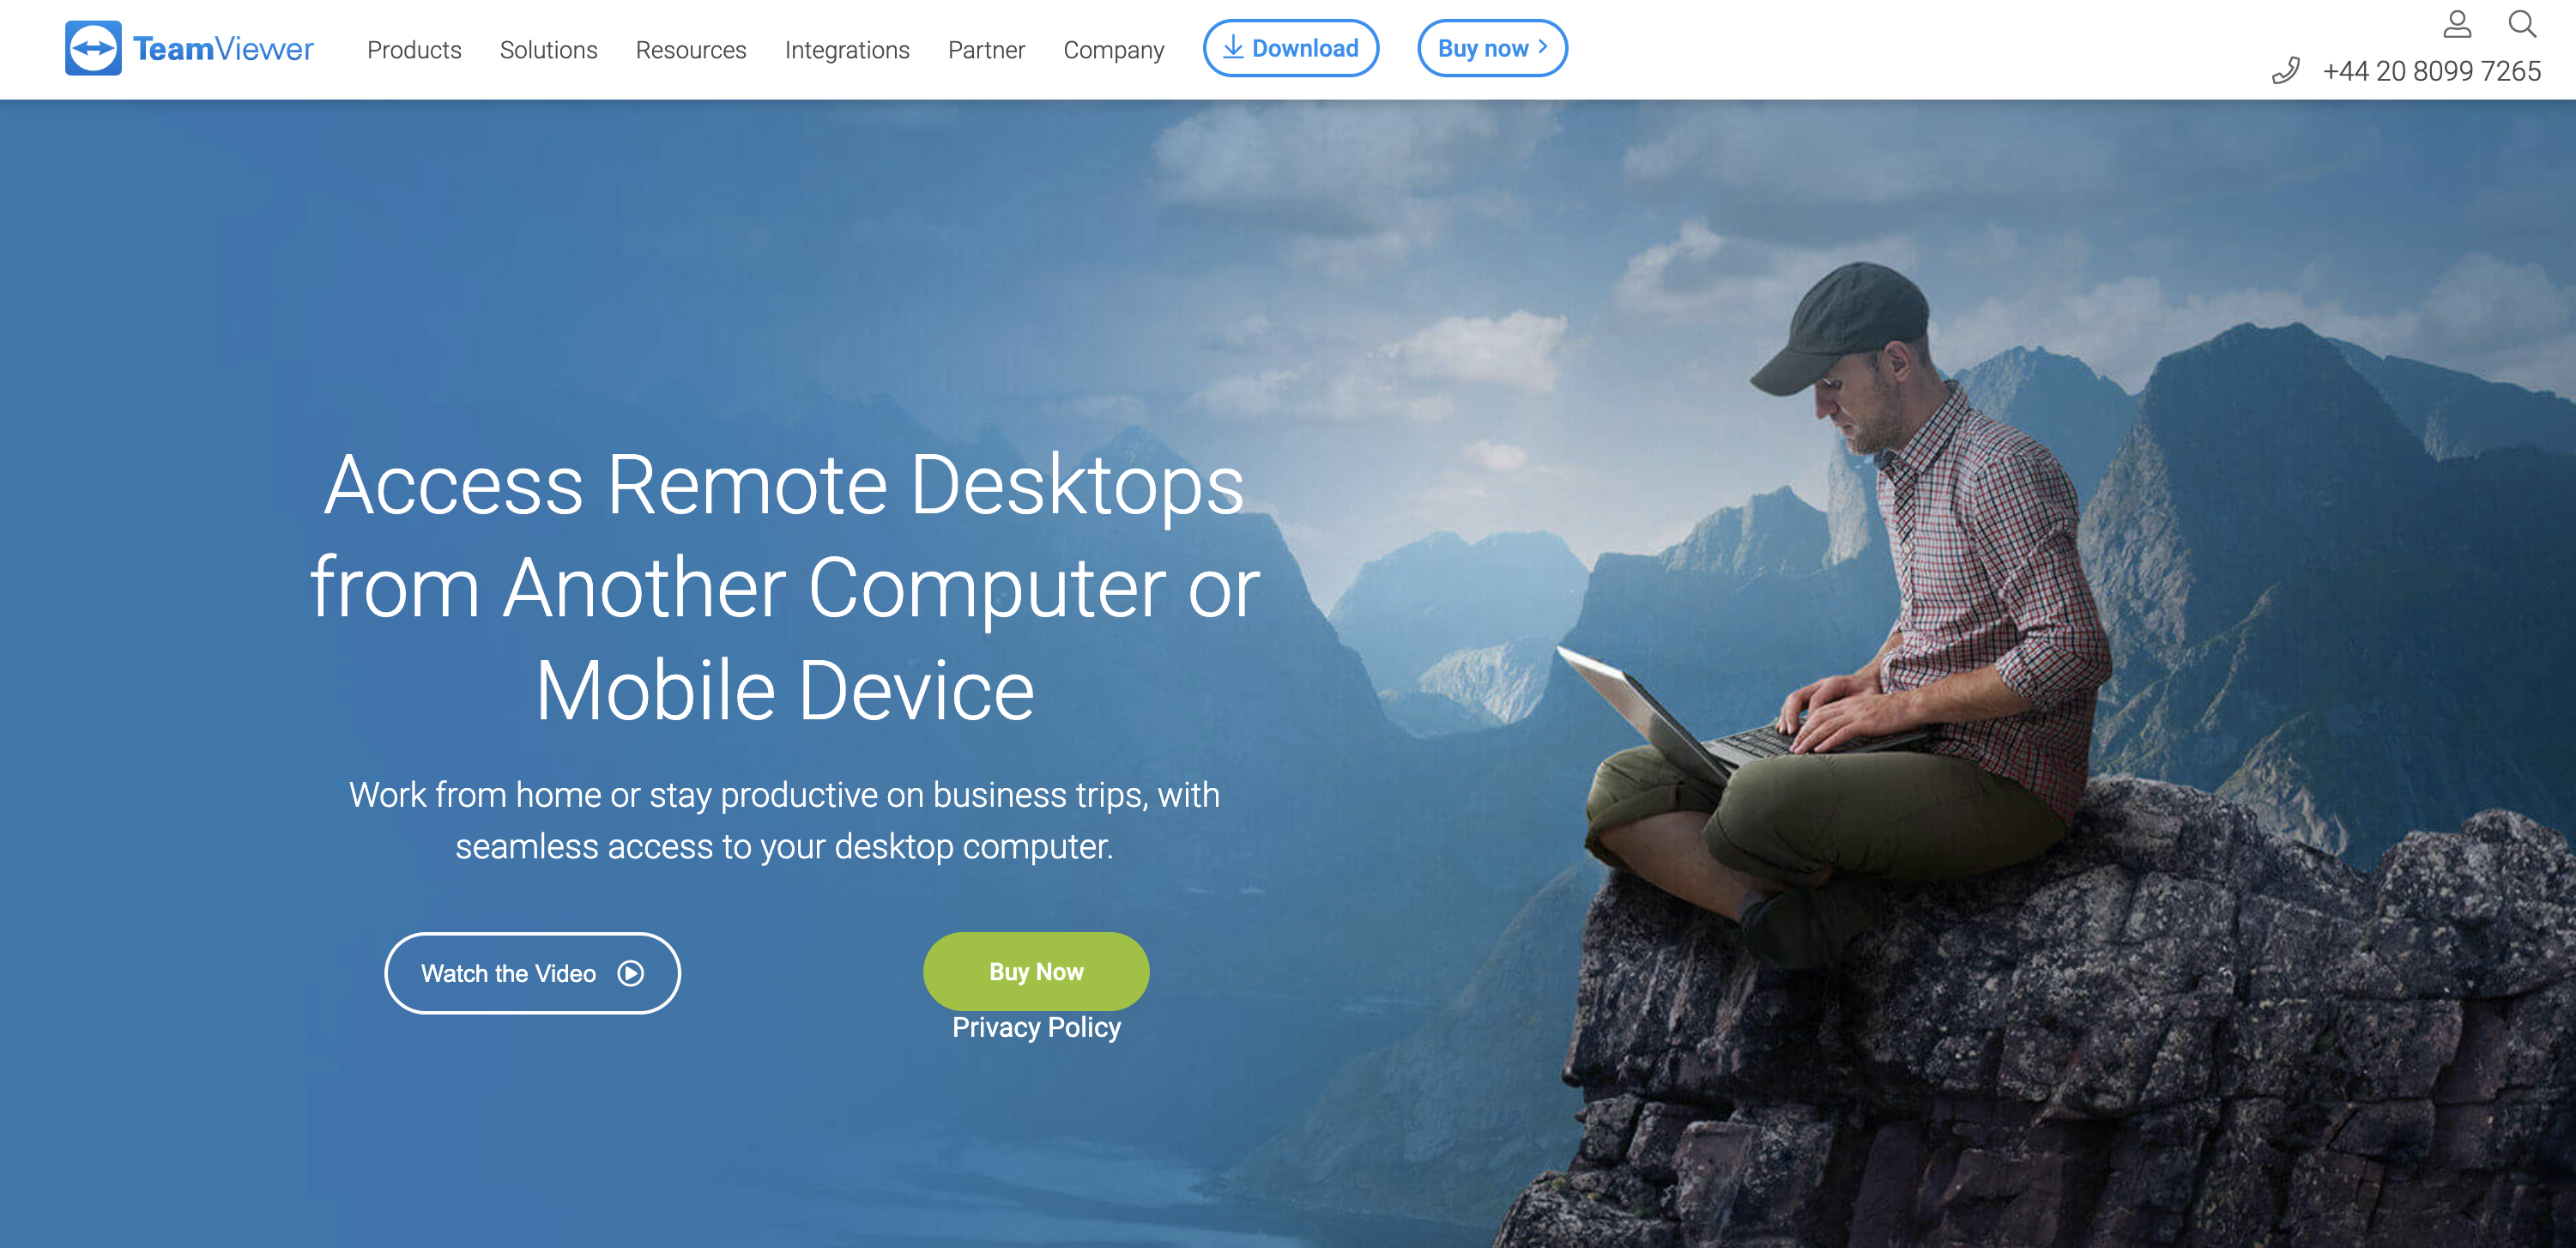 Shows a screenshot of the TeamViewer website a man sits on top of a mountain working on a computer to imply remote support